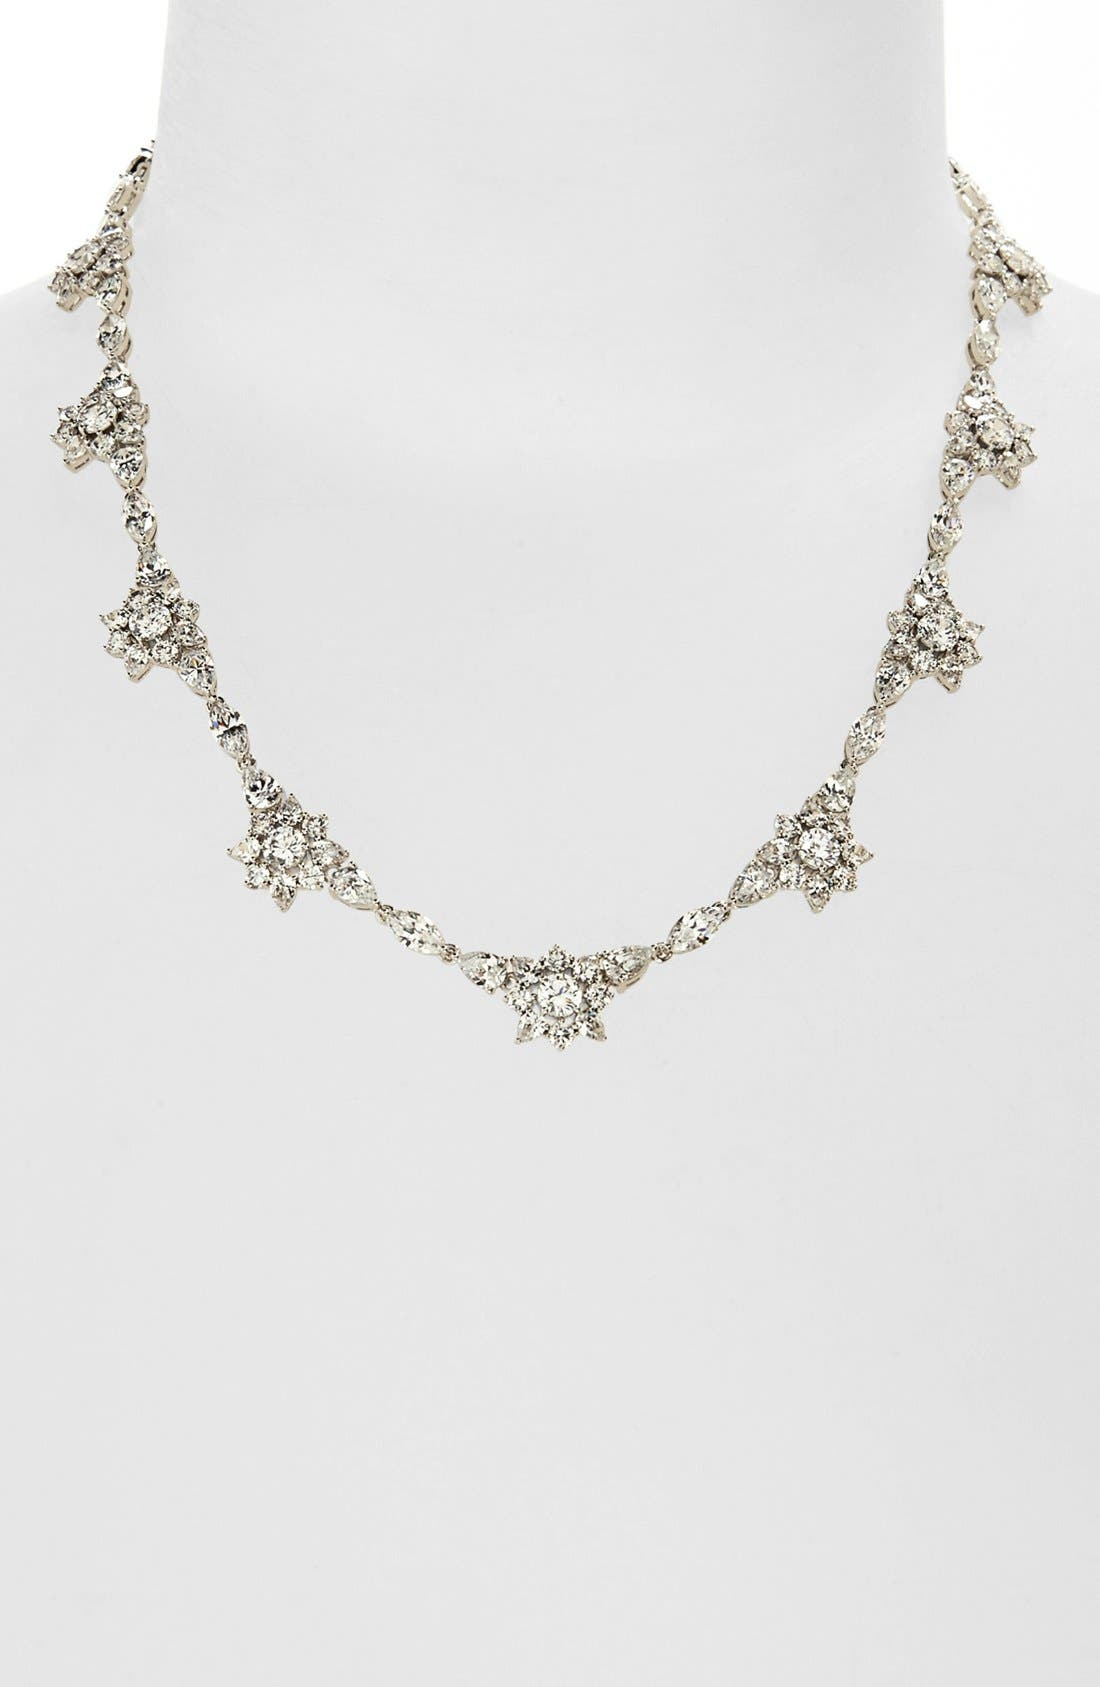 Main Image - Nadri 'Flores' All-Around Necklace